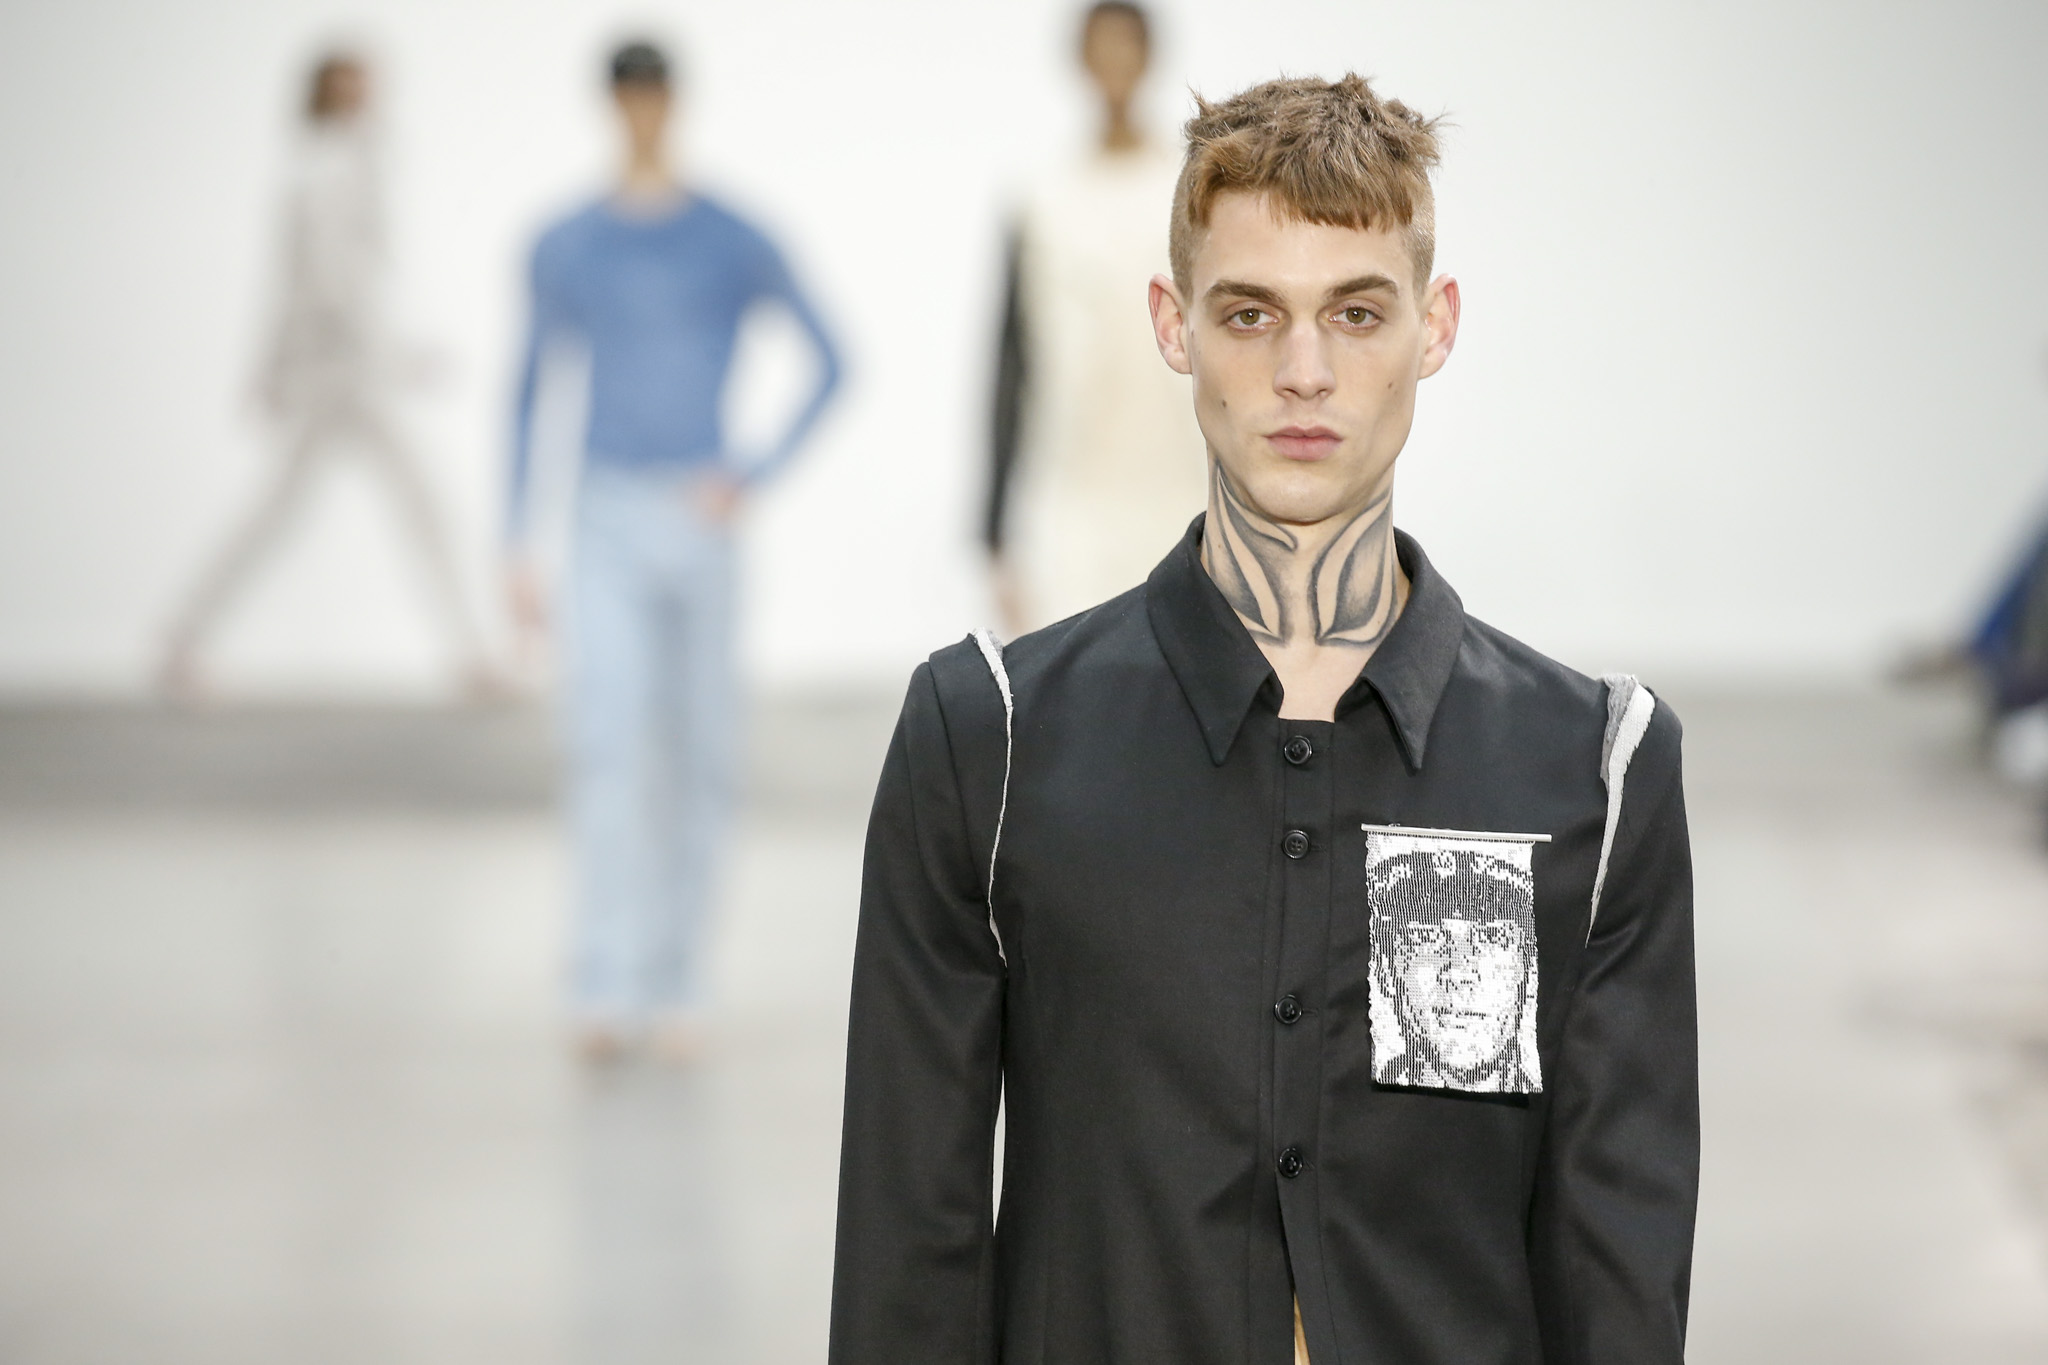 Per Gotesson Spring 2020 photographed in London on 09 June 2019